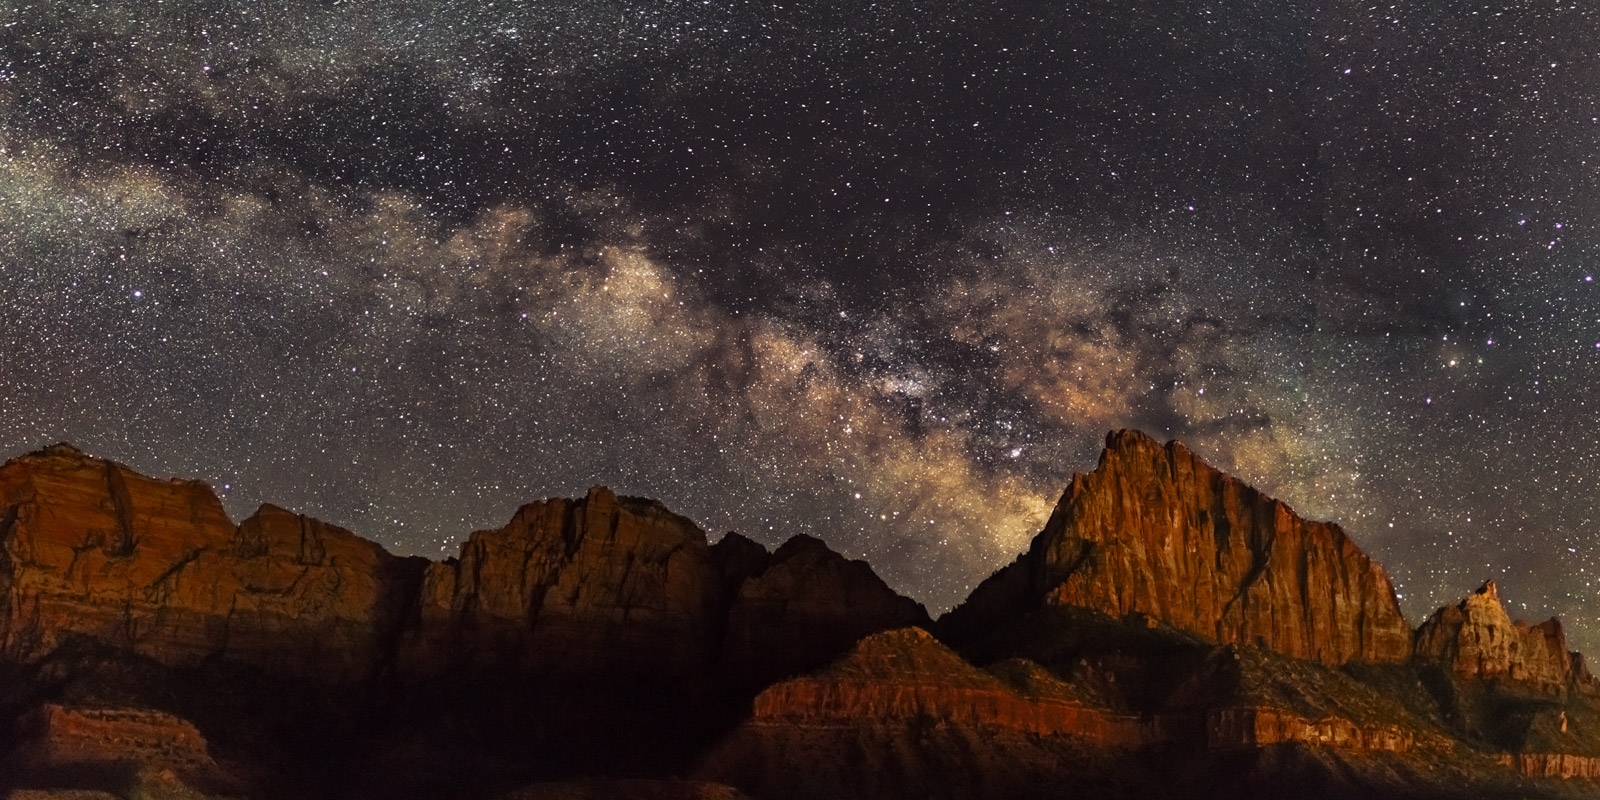 Utah, Milky Way, Zion National Park, The Watchman, limited edition, photograph, fine art, landscape, photo